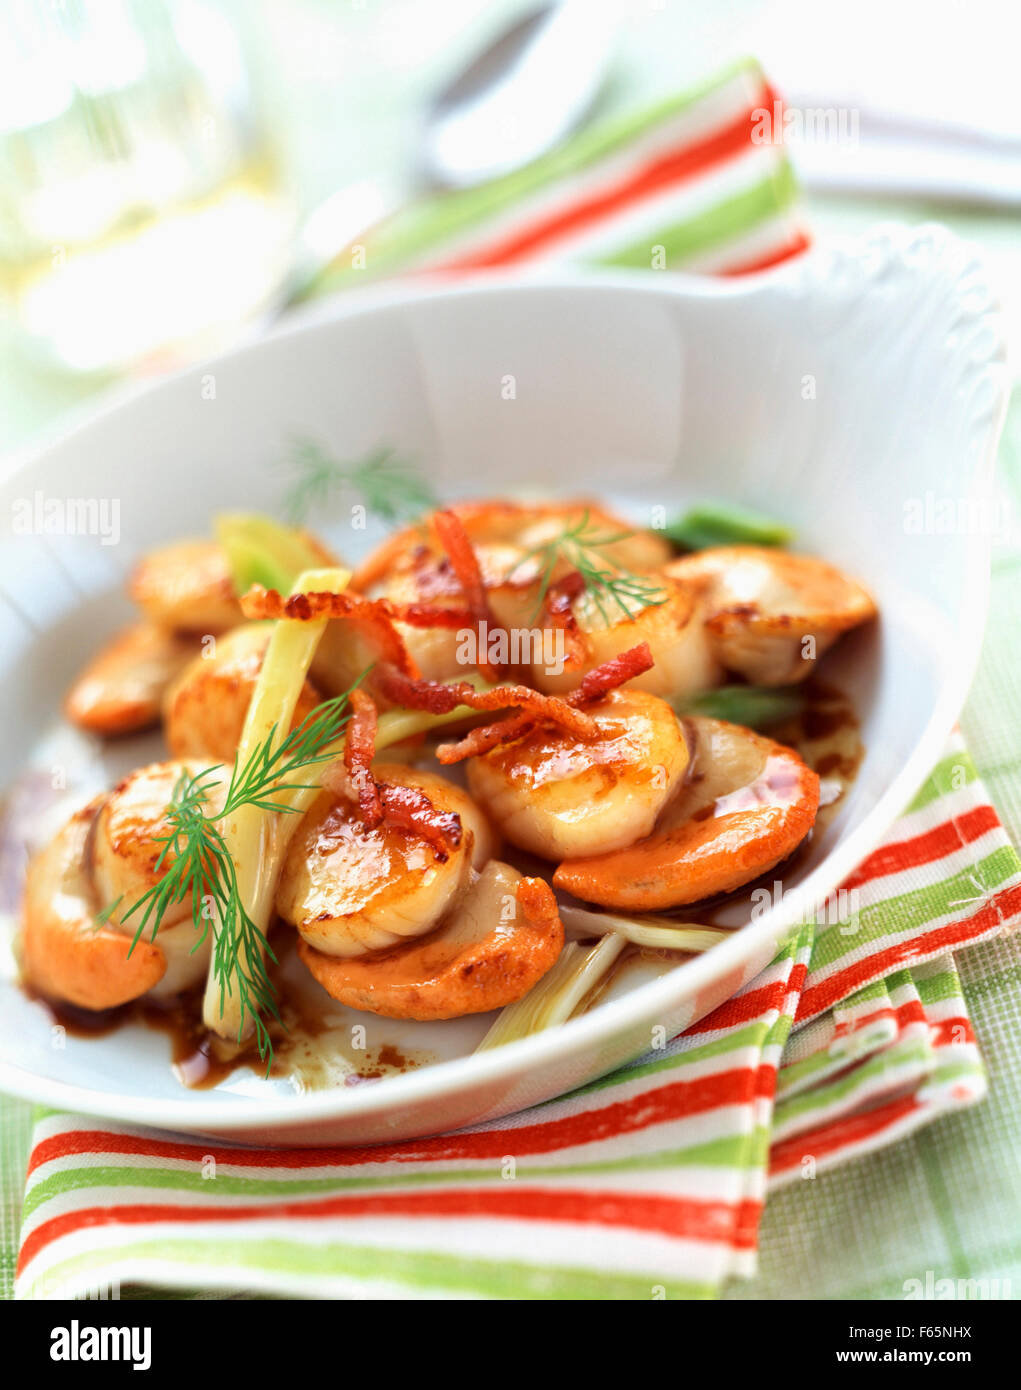 Sauteed scallpos with bacon and fennel Stock Photo